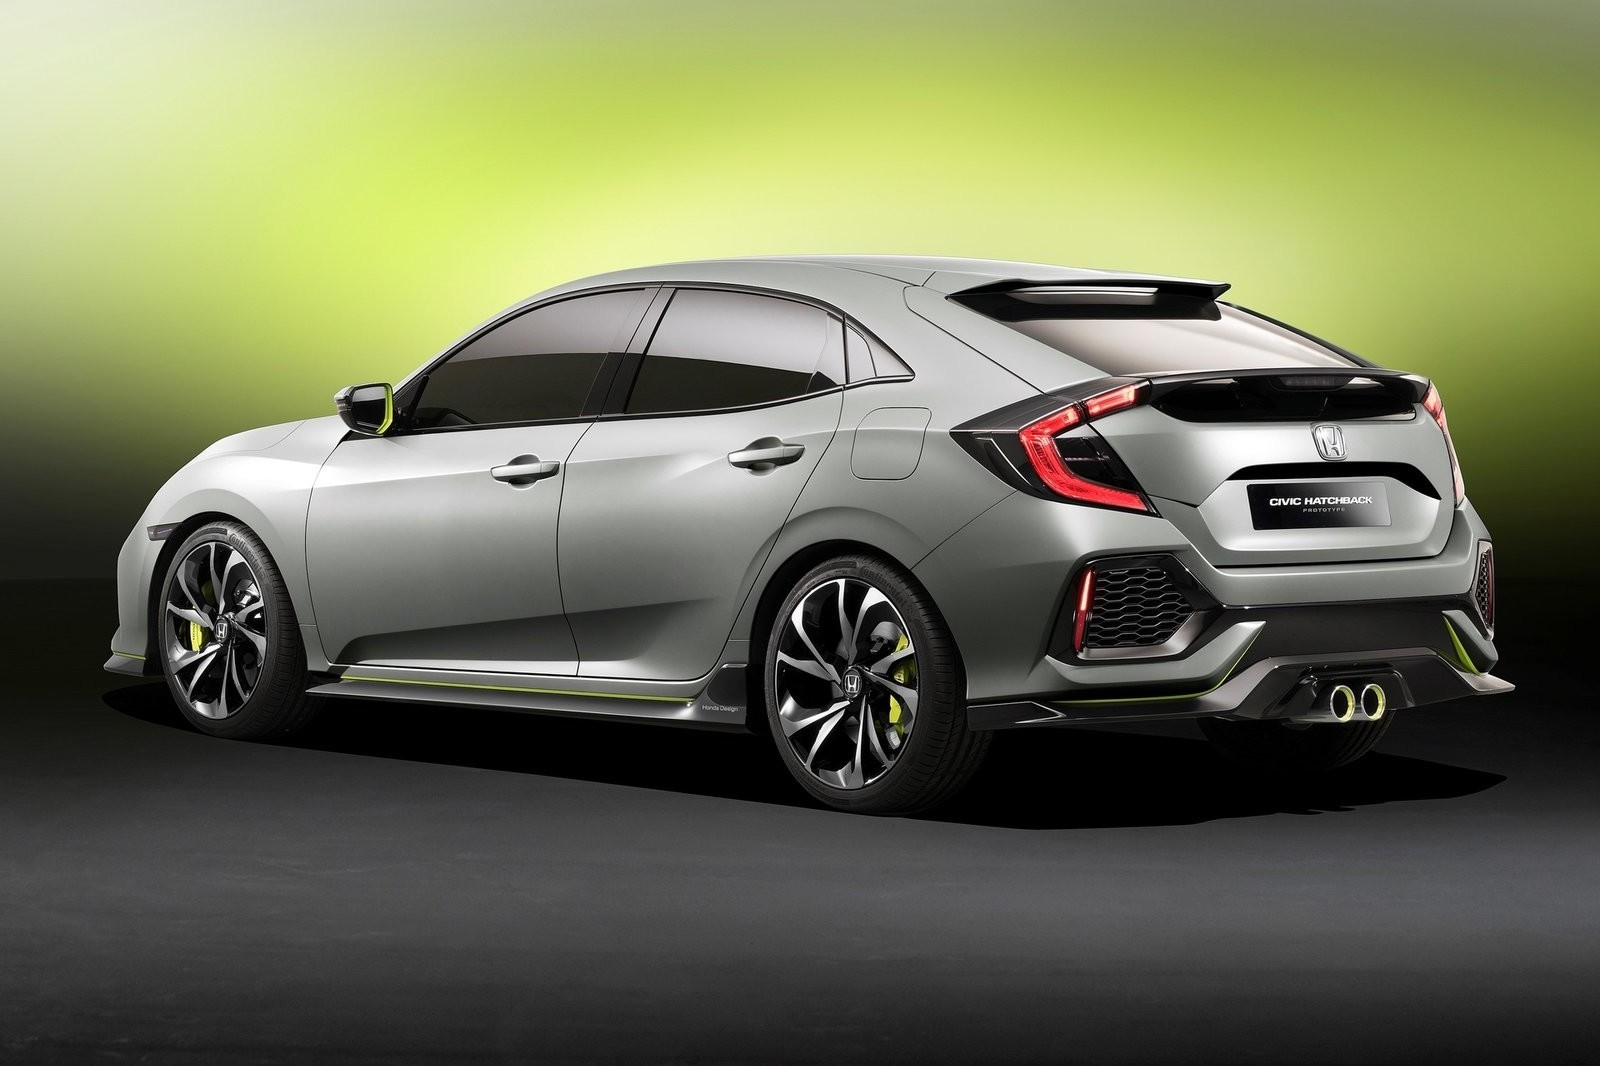 2017 Honda Civic Hatchback Prototype Autos Ca